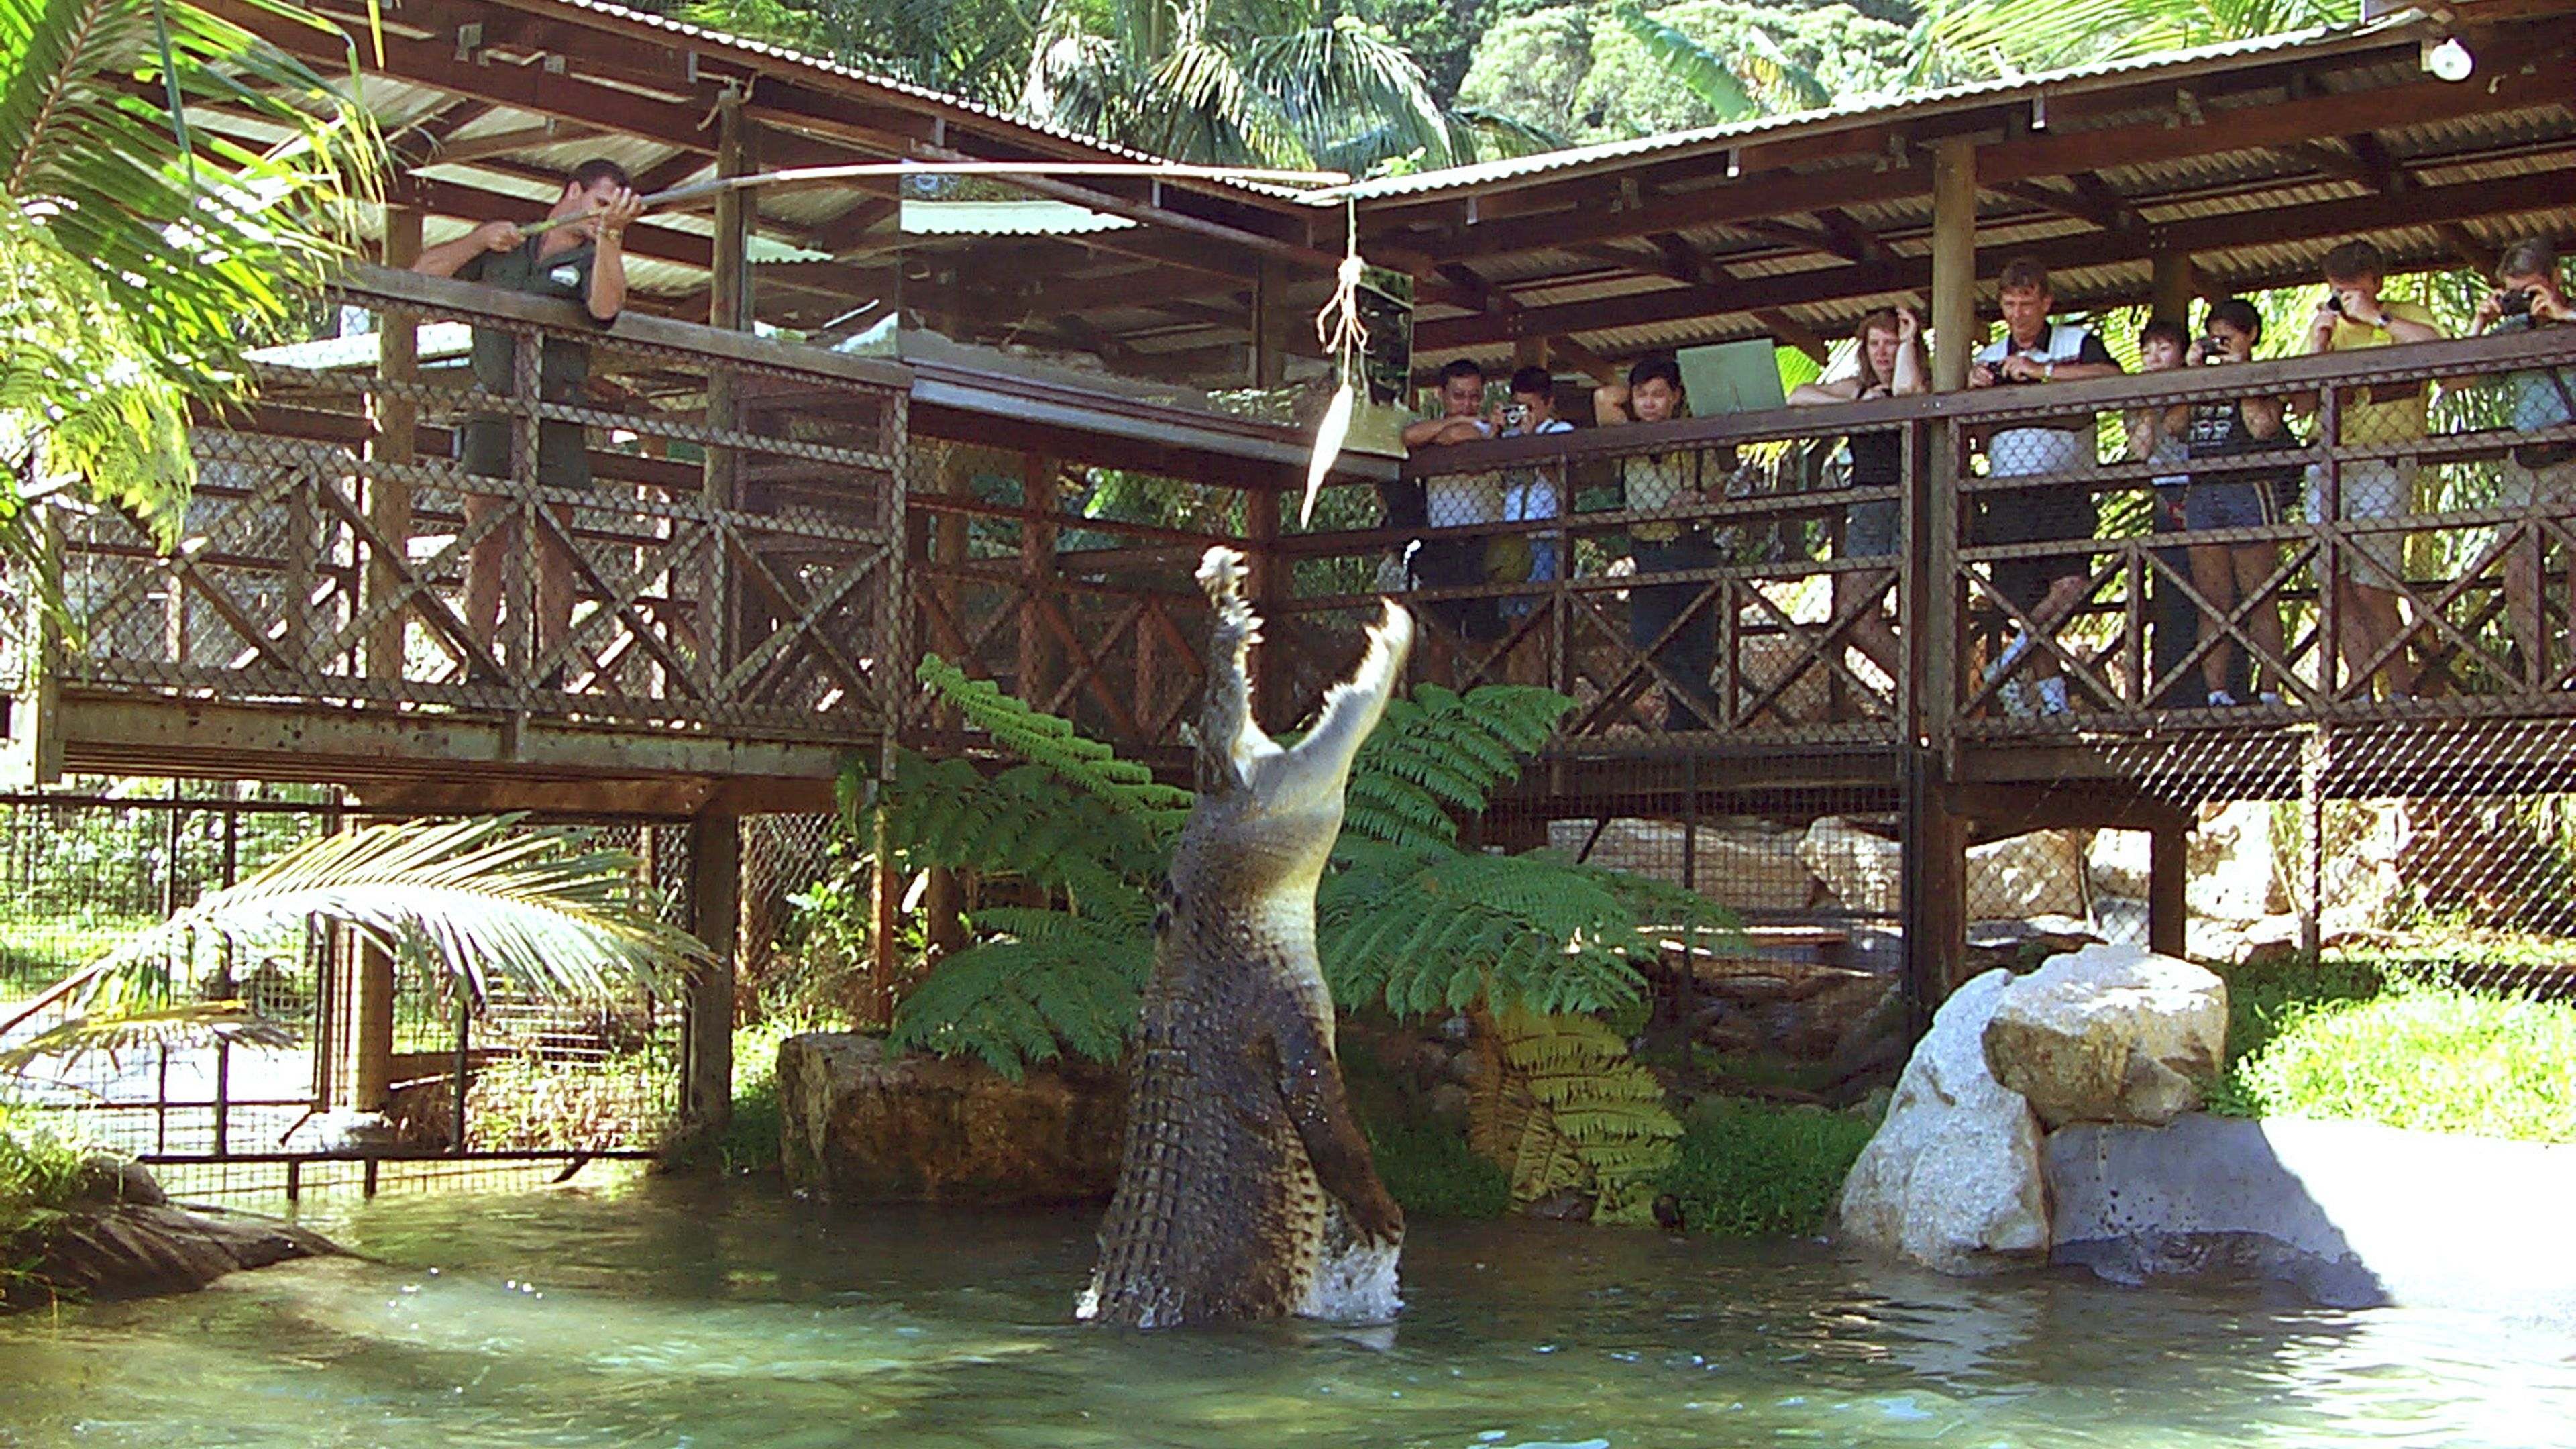 A crocodile jumping out of the water for food at the Rainforestation Nature Park